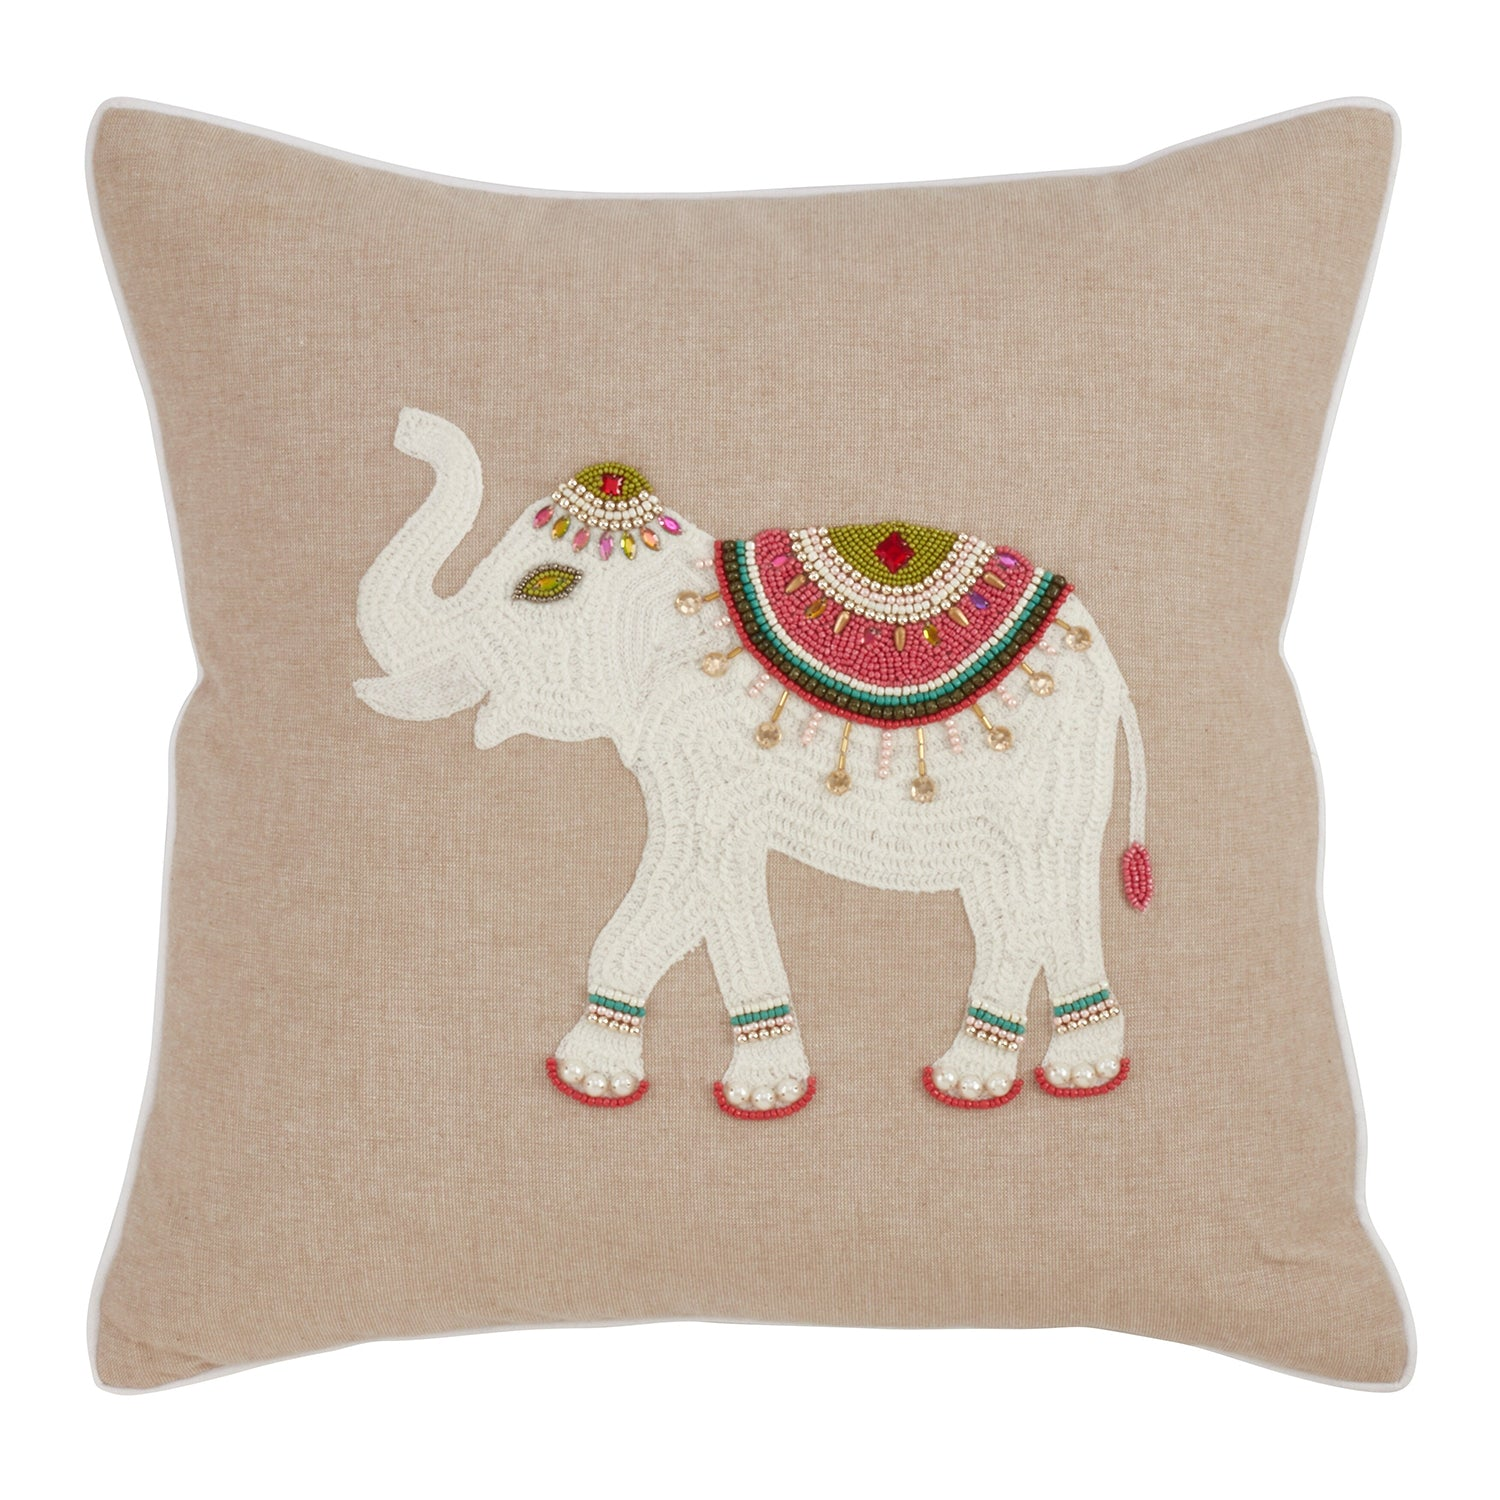 Fennco Styles Jhools Collection Embroidery Beaded Safari Animal Design 100% Pure Cotton 18-Inch Square Decorative Throw Pillow